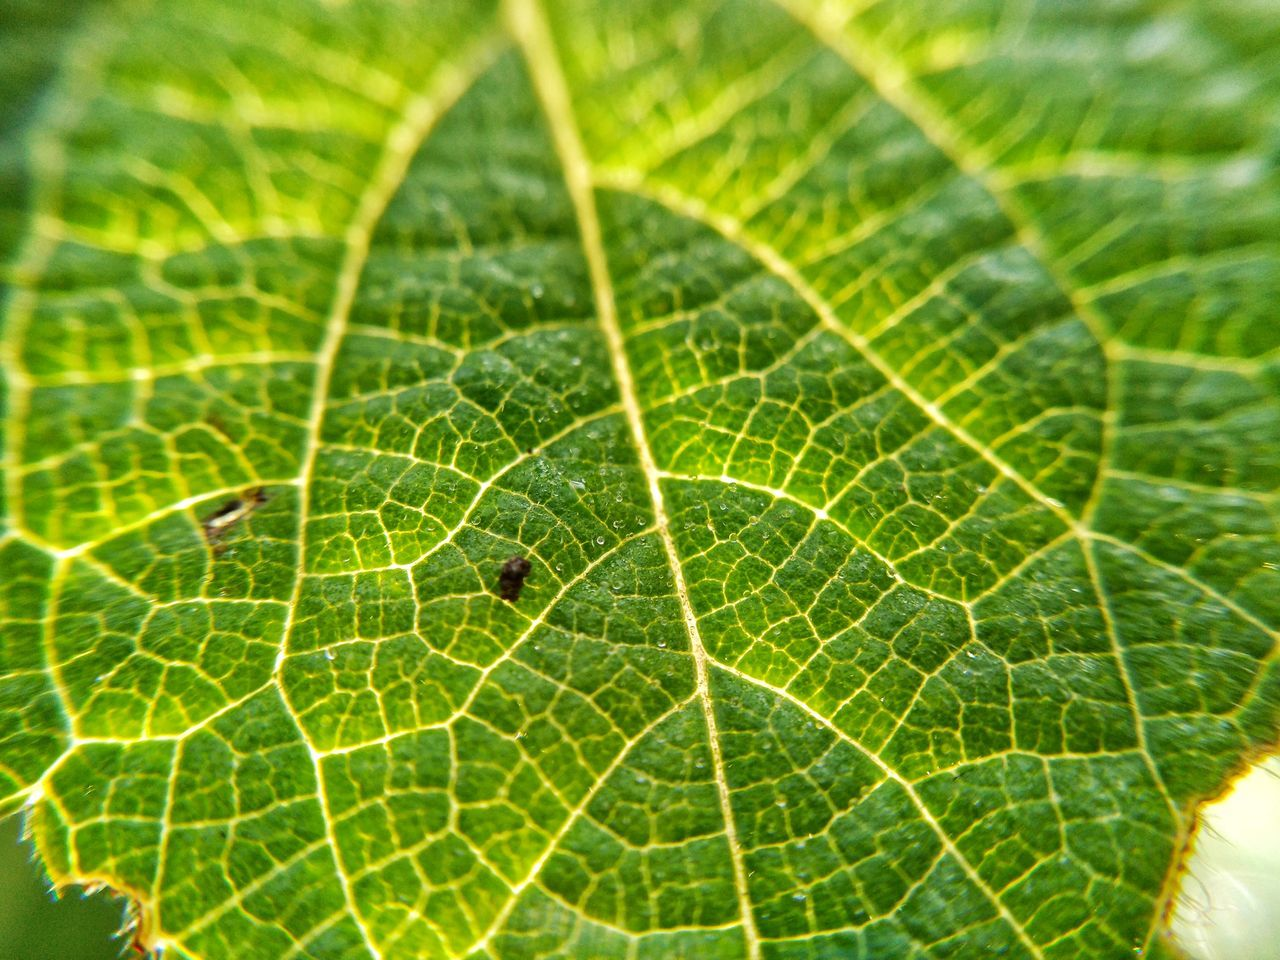 Plant Close-up Animal Themes Nature One Animal Focus On Foreground Insect No People Leaf Outdoors Green Color Spider Web Spider Fragility Animals In The Wild Animal Wildlife Beauty In Nature Day Freshness Web